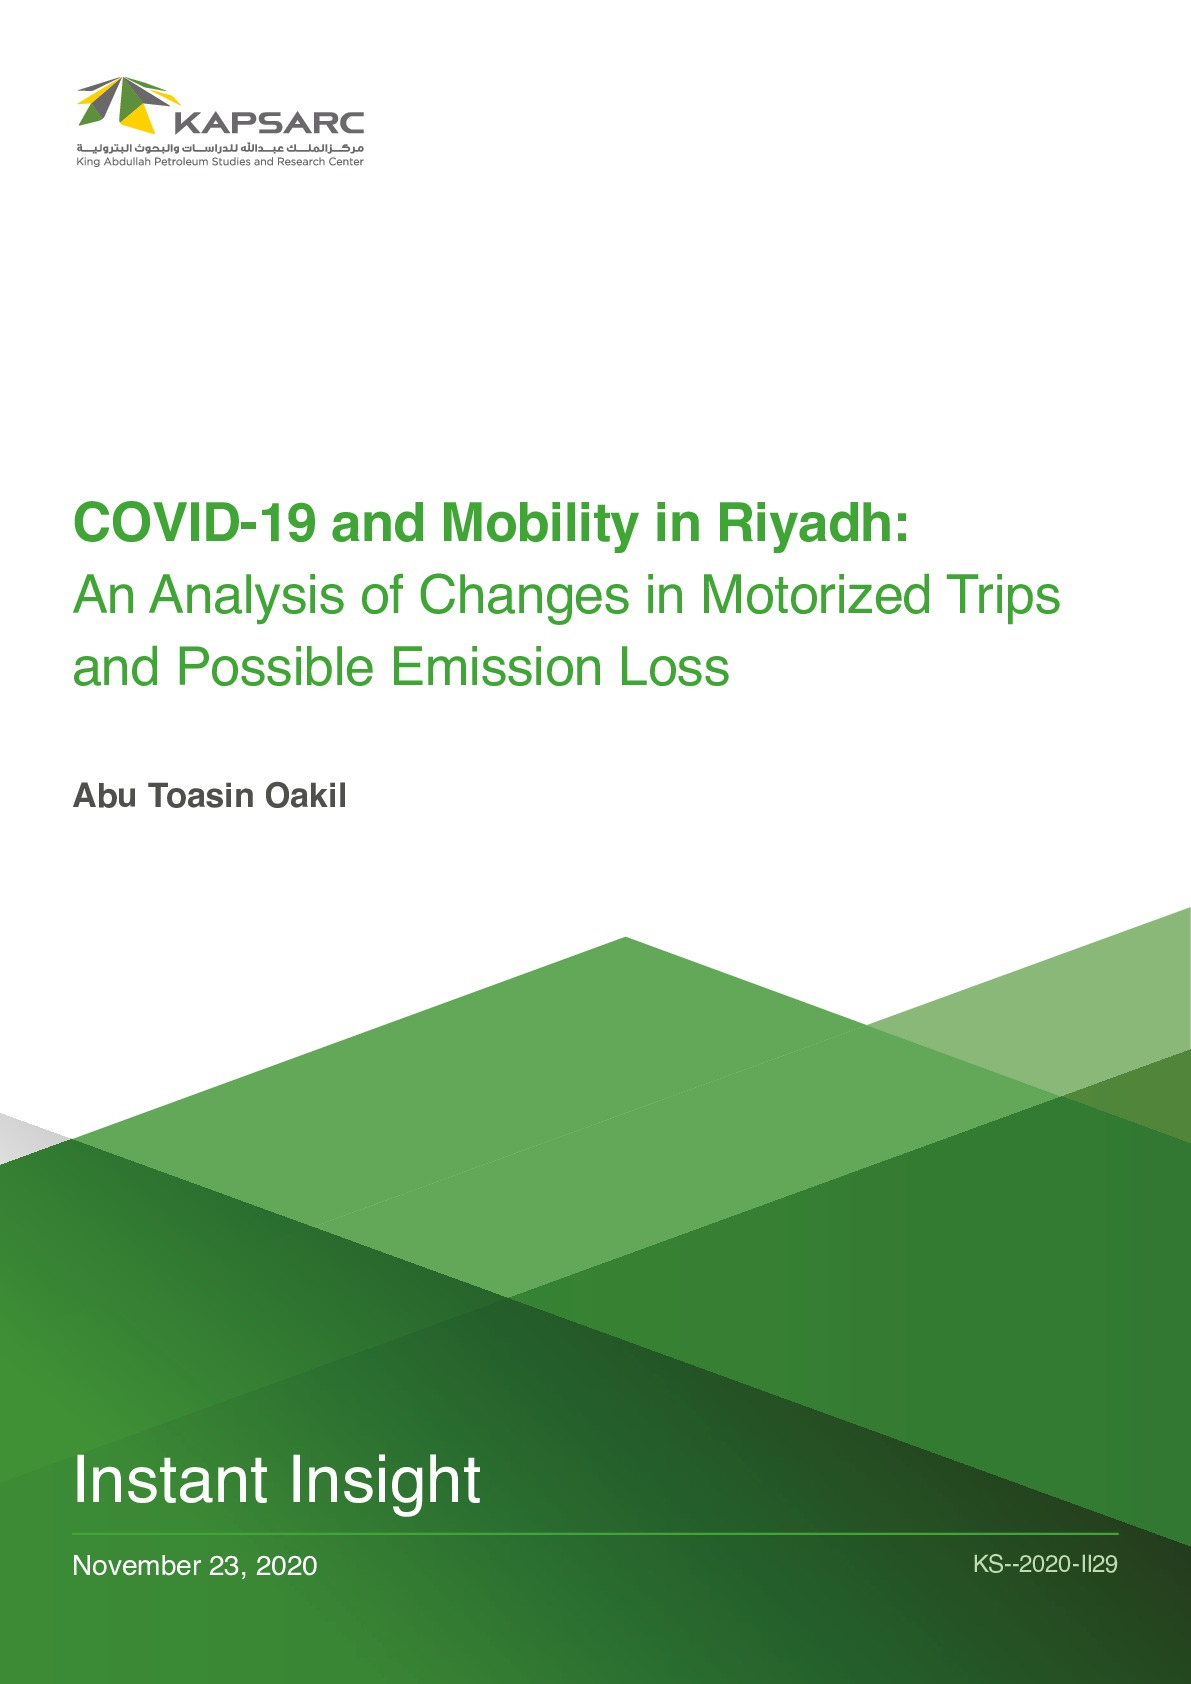 COVID-19 and Mobility in Riyadh: An Analysis of Changes in Motorized Trips and Possible Emission Loss